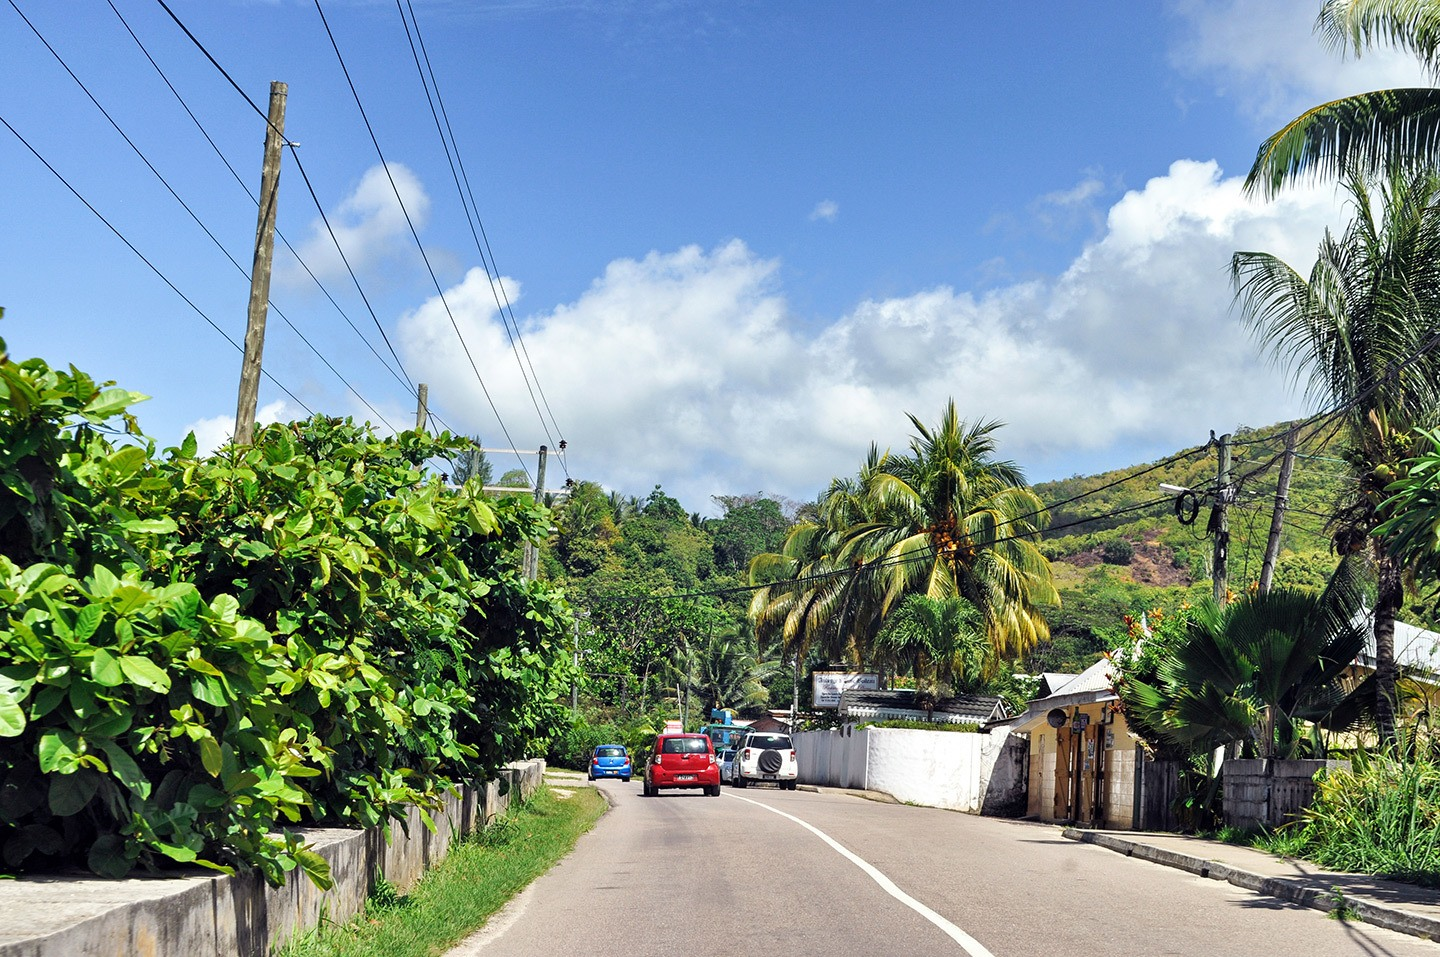 Roads in Mahé in the Seychelles